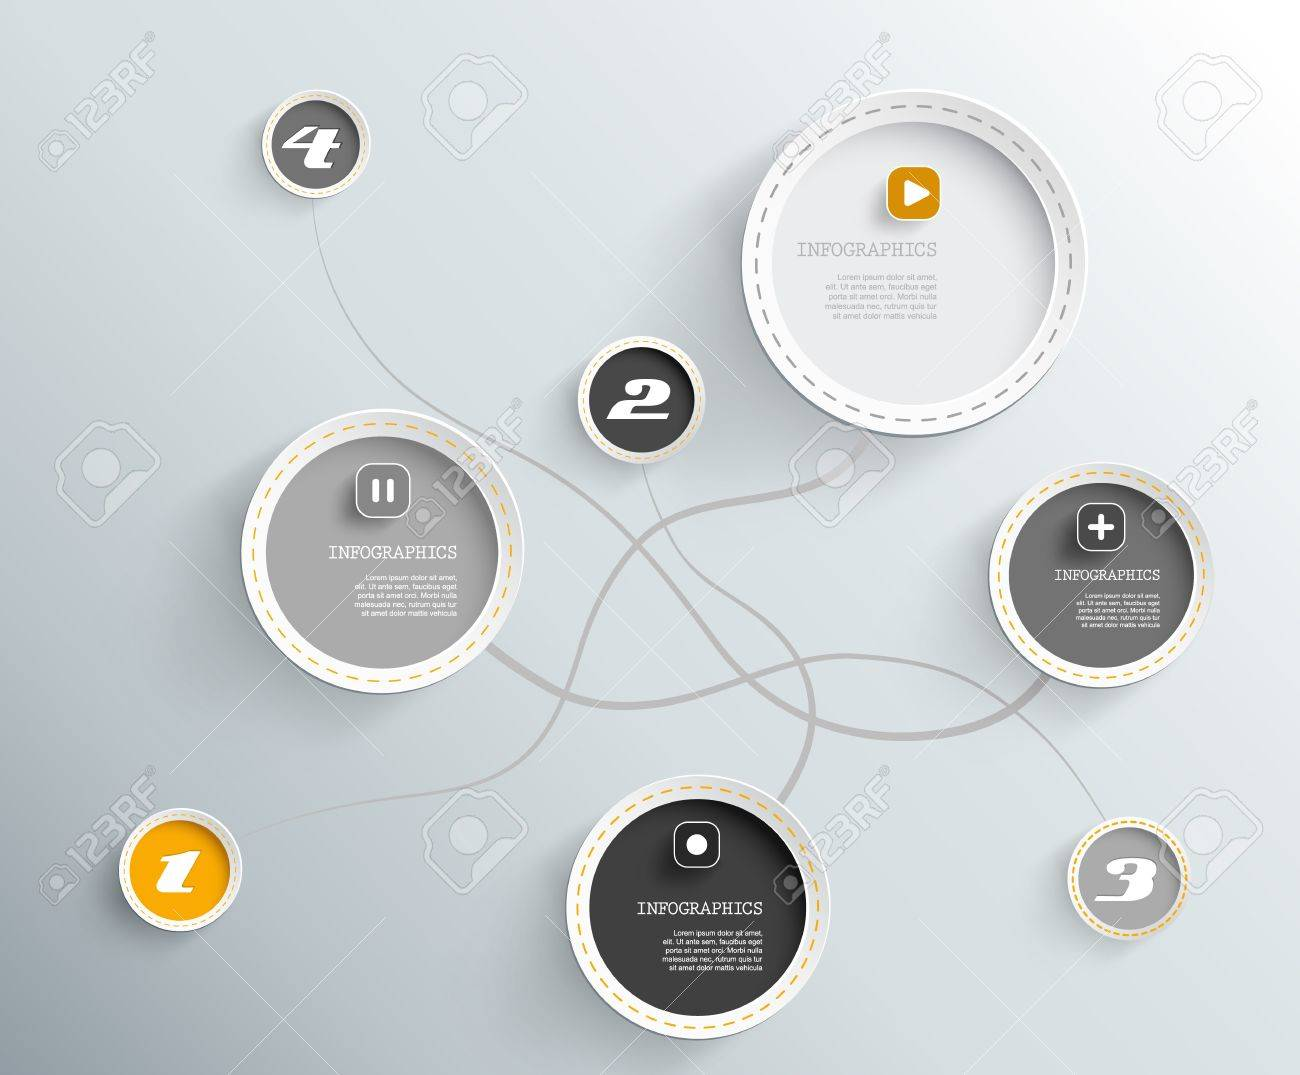 3d circles with shadows and place for your own text. - 20862687